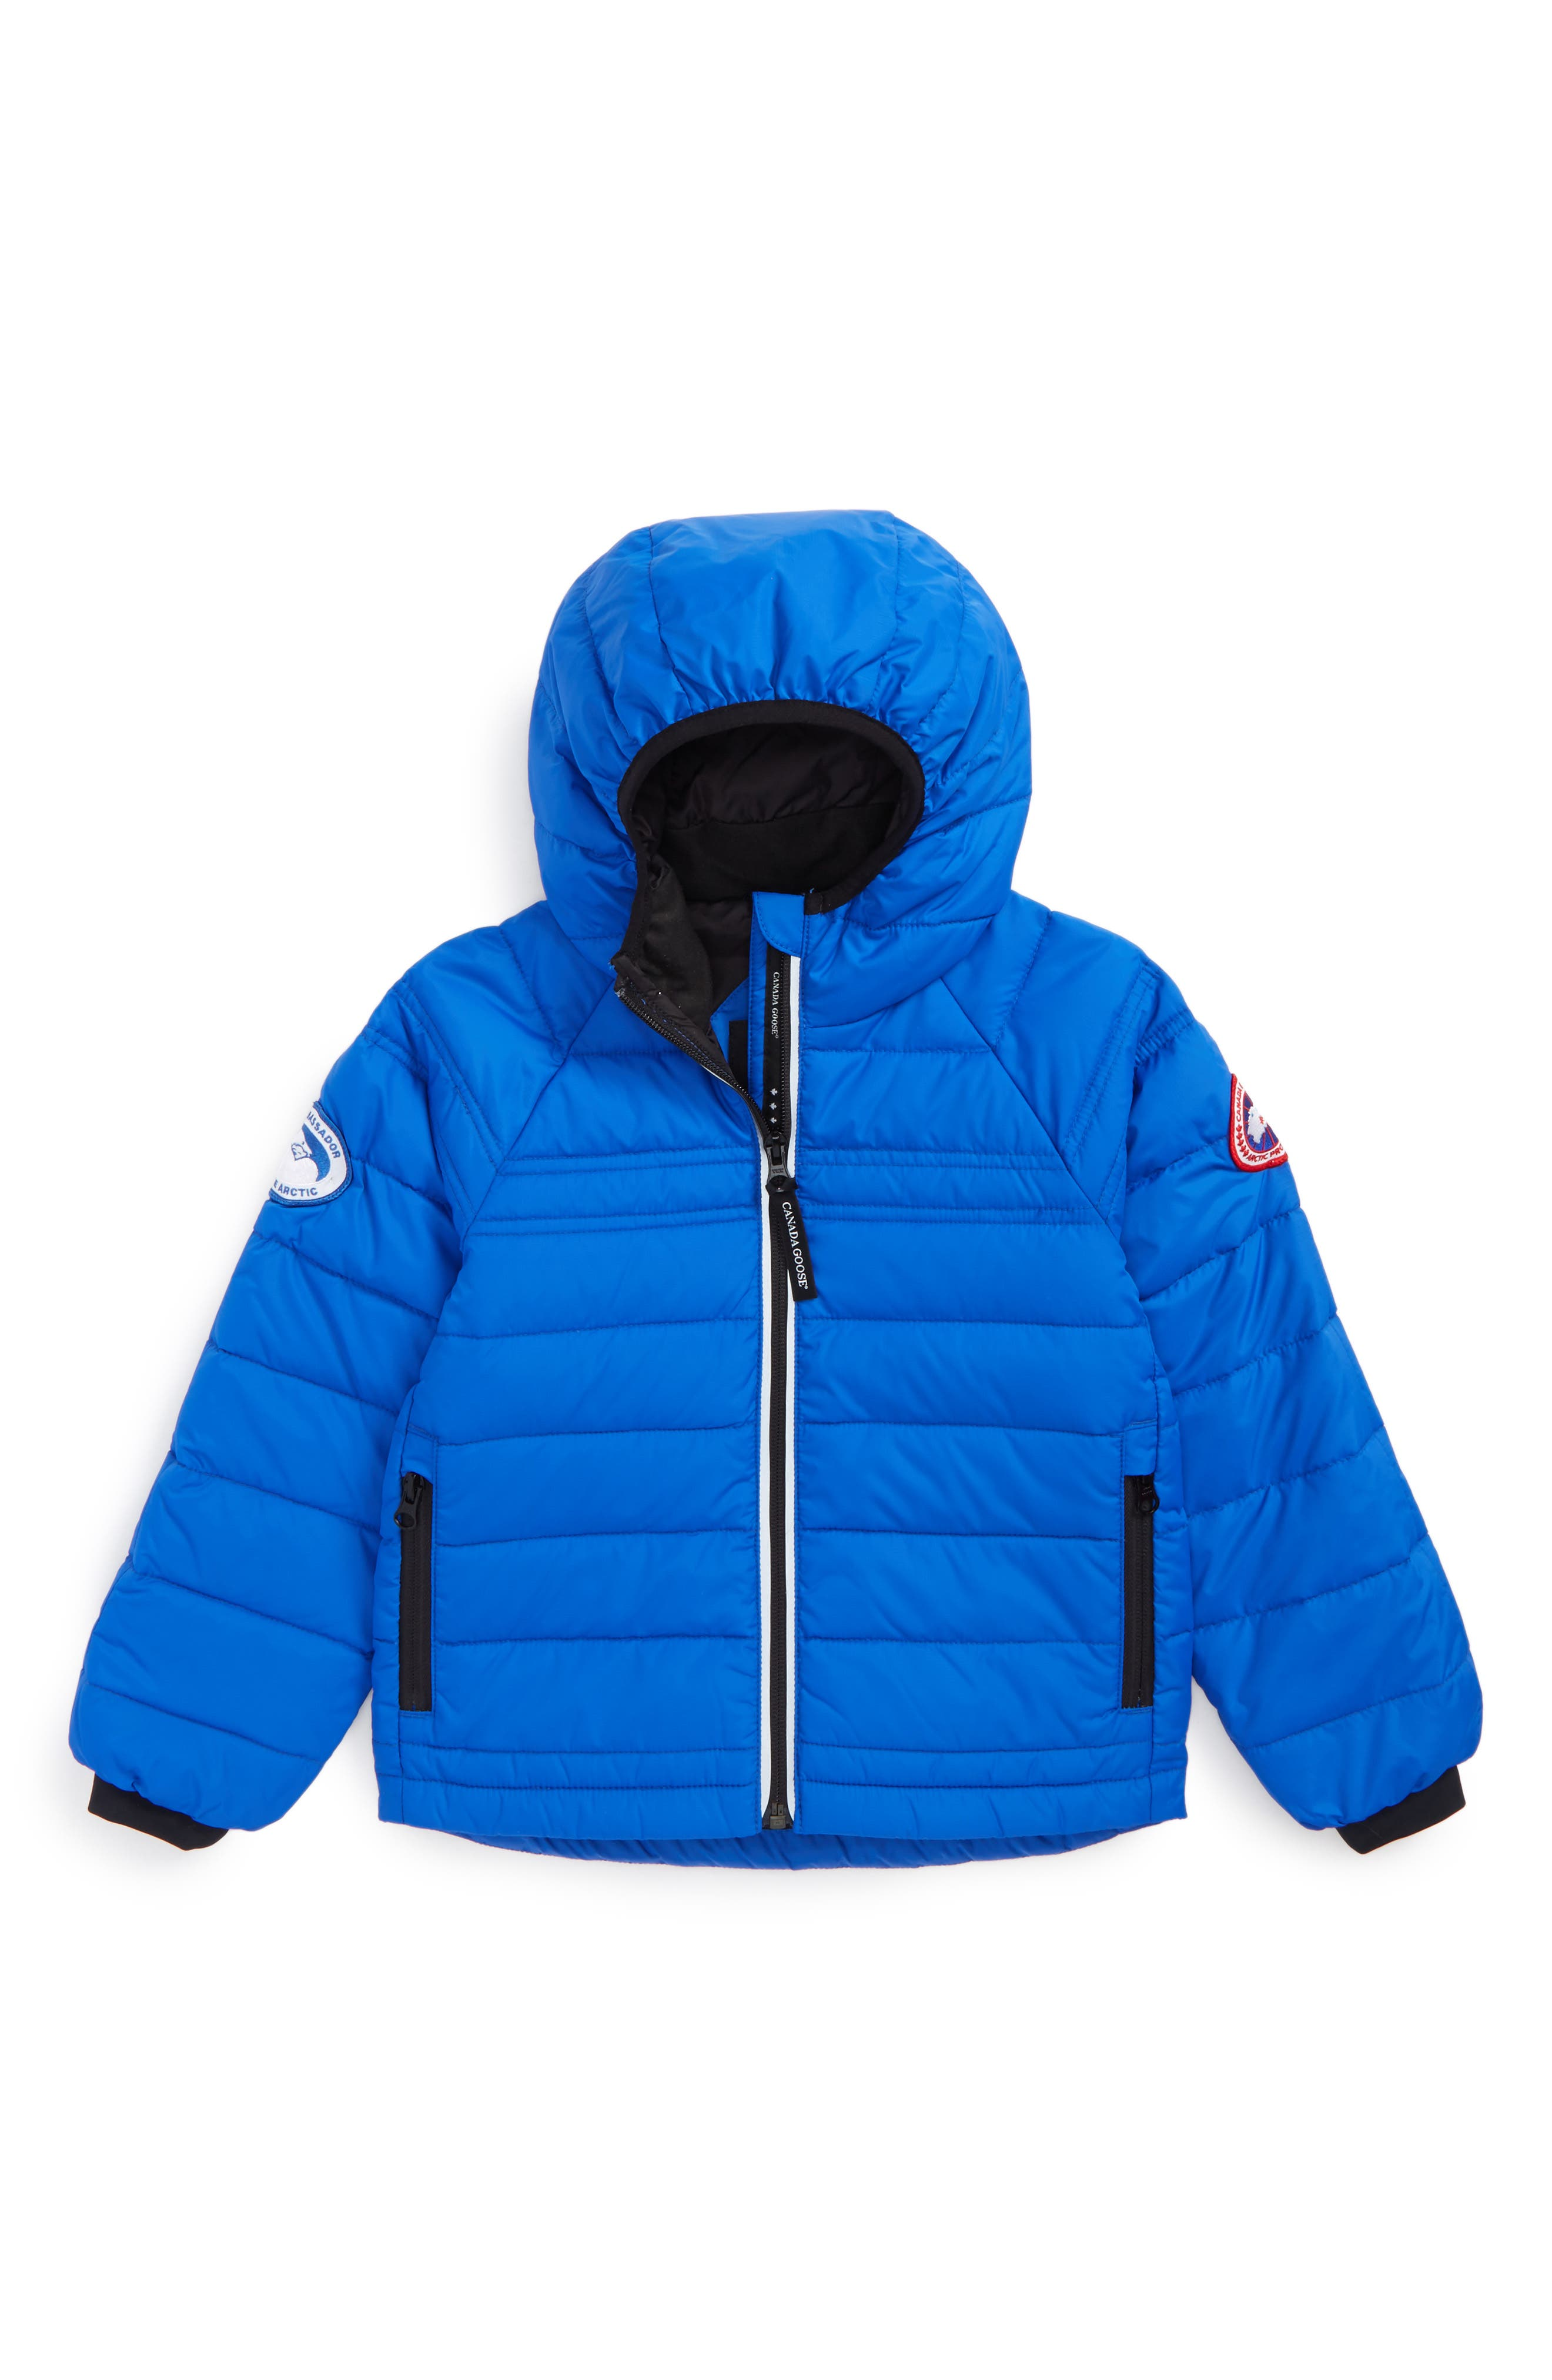 Alternate Image 1 Selected - Canada Goose Bobcat Water Resistant Hooded Down Jacket (Toddler Kids & Little Kids)